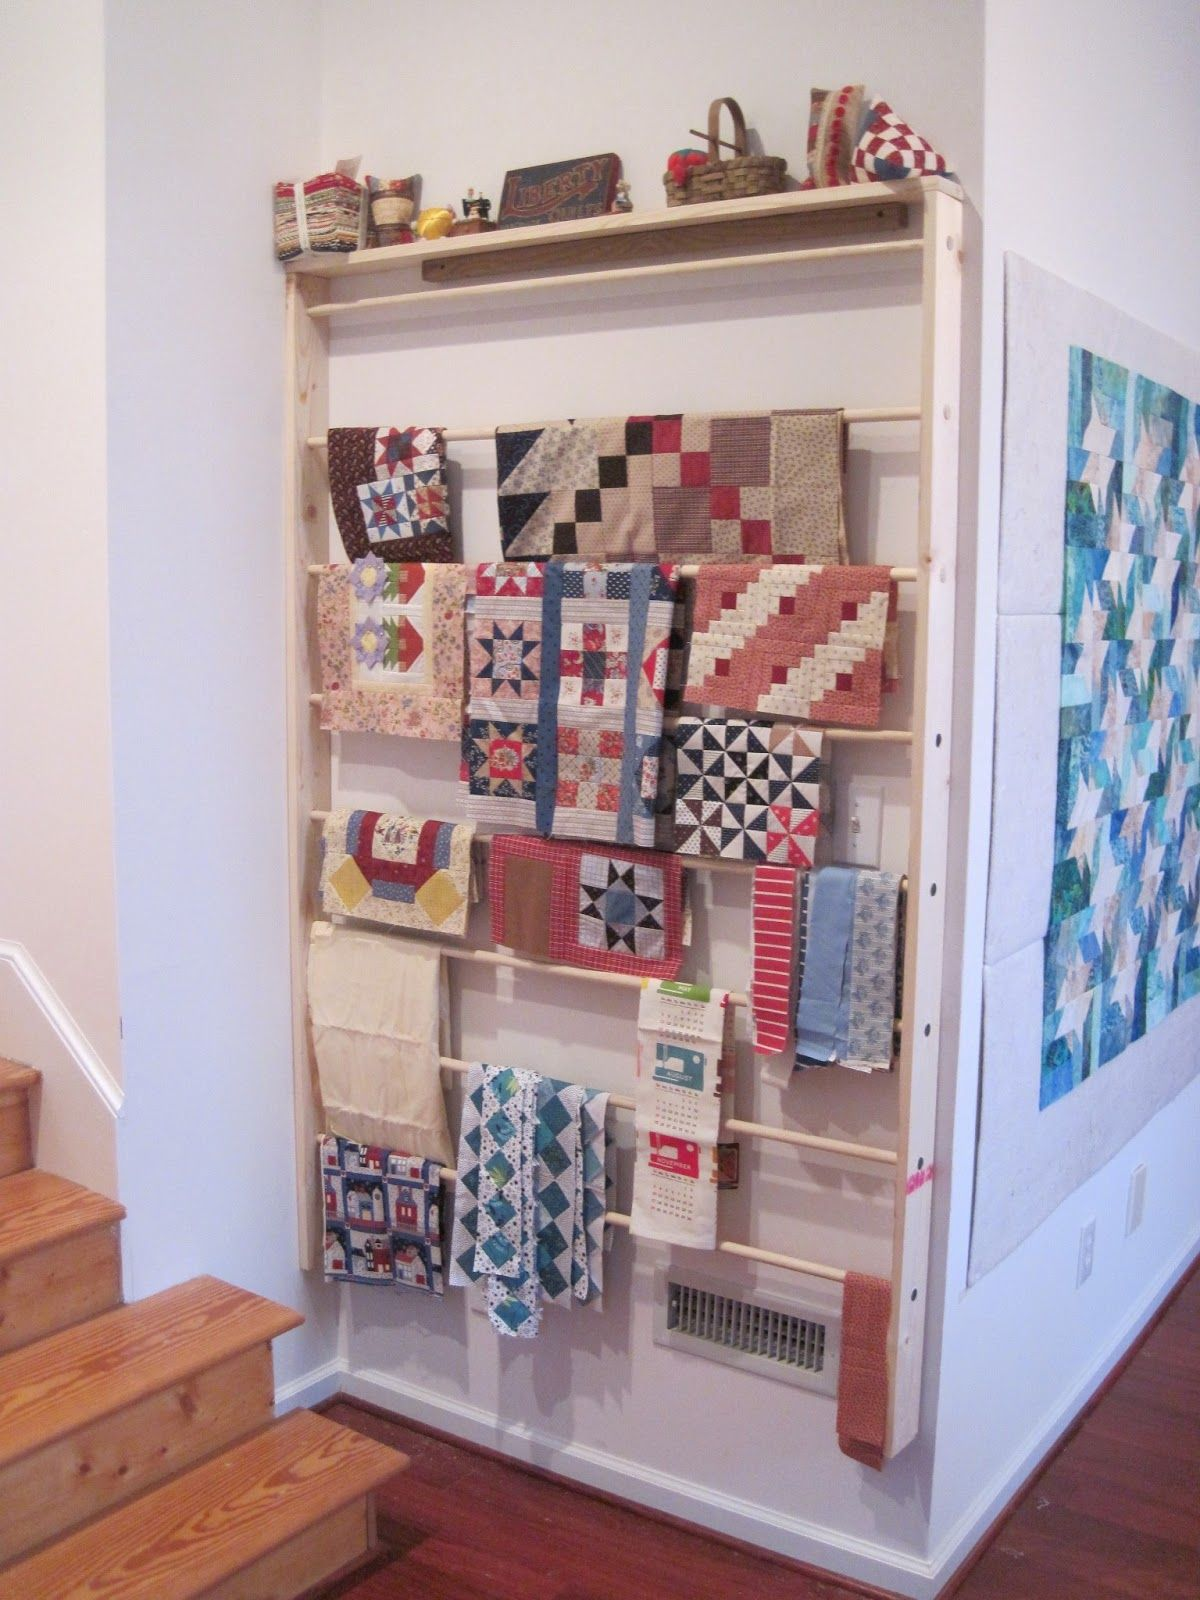 l us seemed crib choices to blackfashionexpo design rack baby be choice quilt white fabric better display hanger wood a so blanket